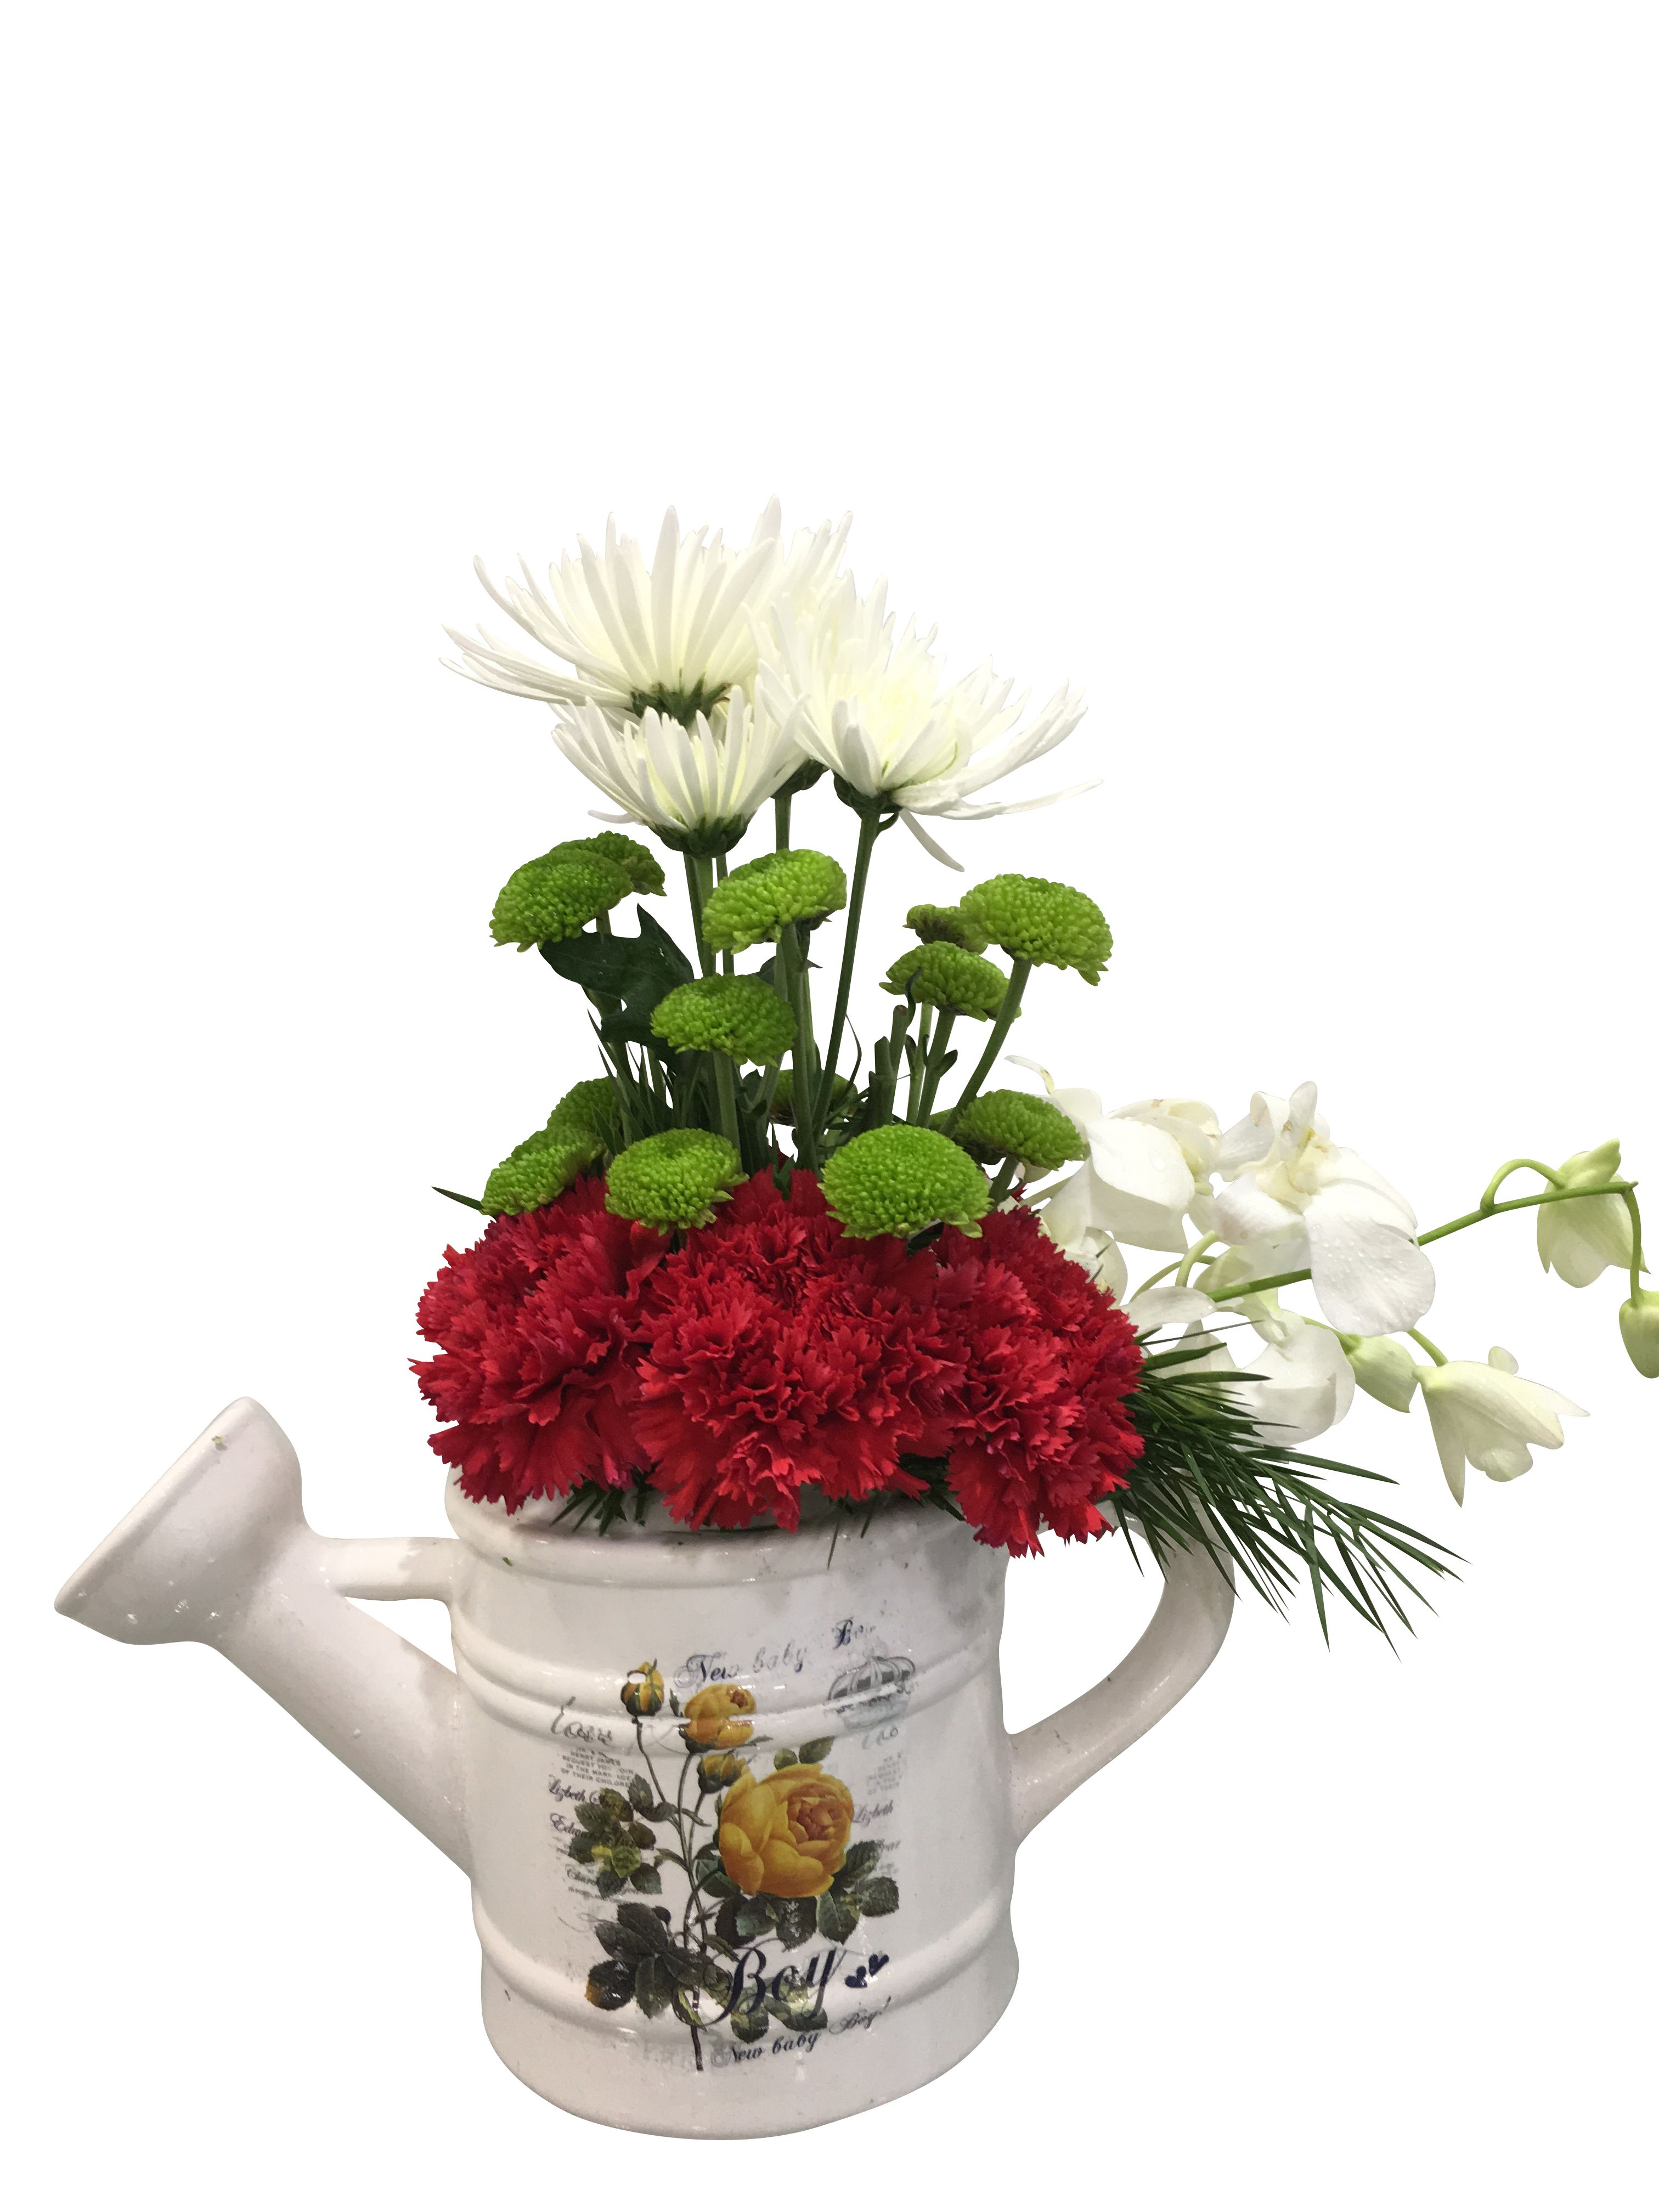 Amazing flower delivery service. bouquets and